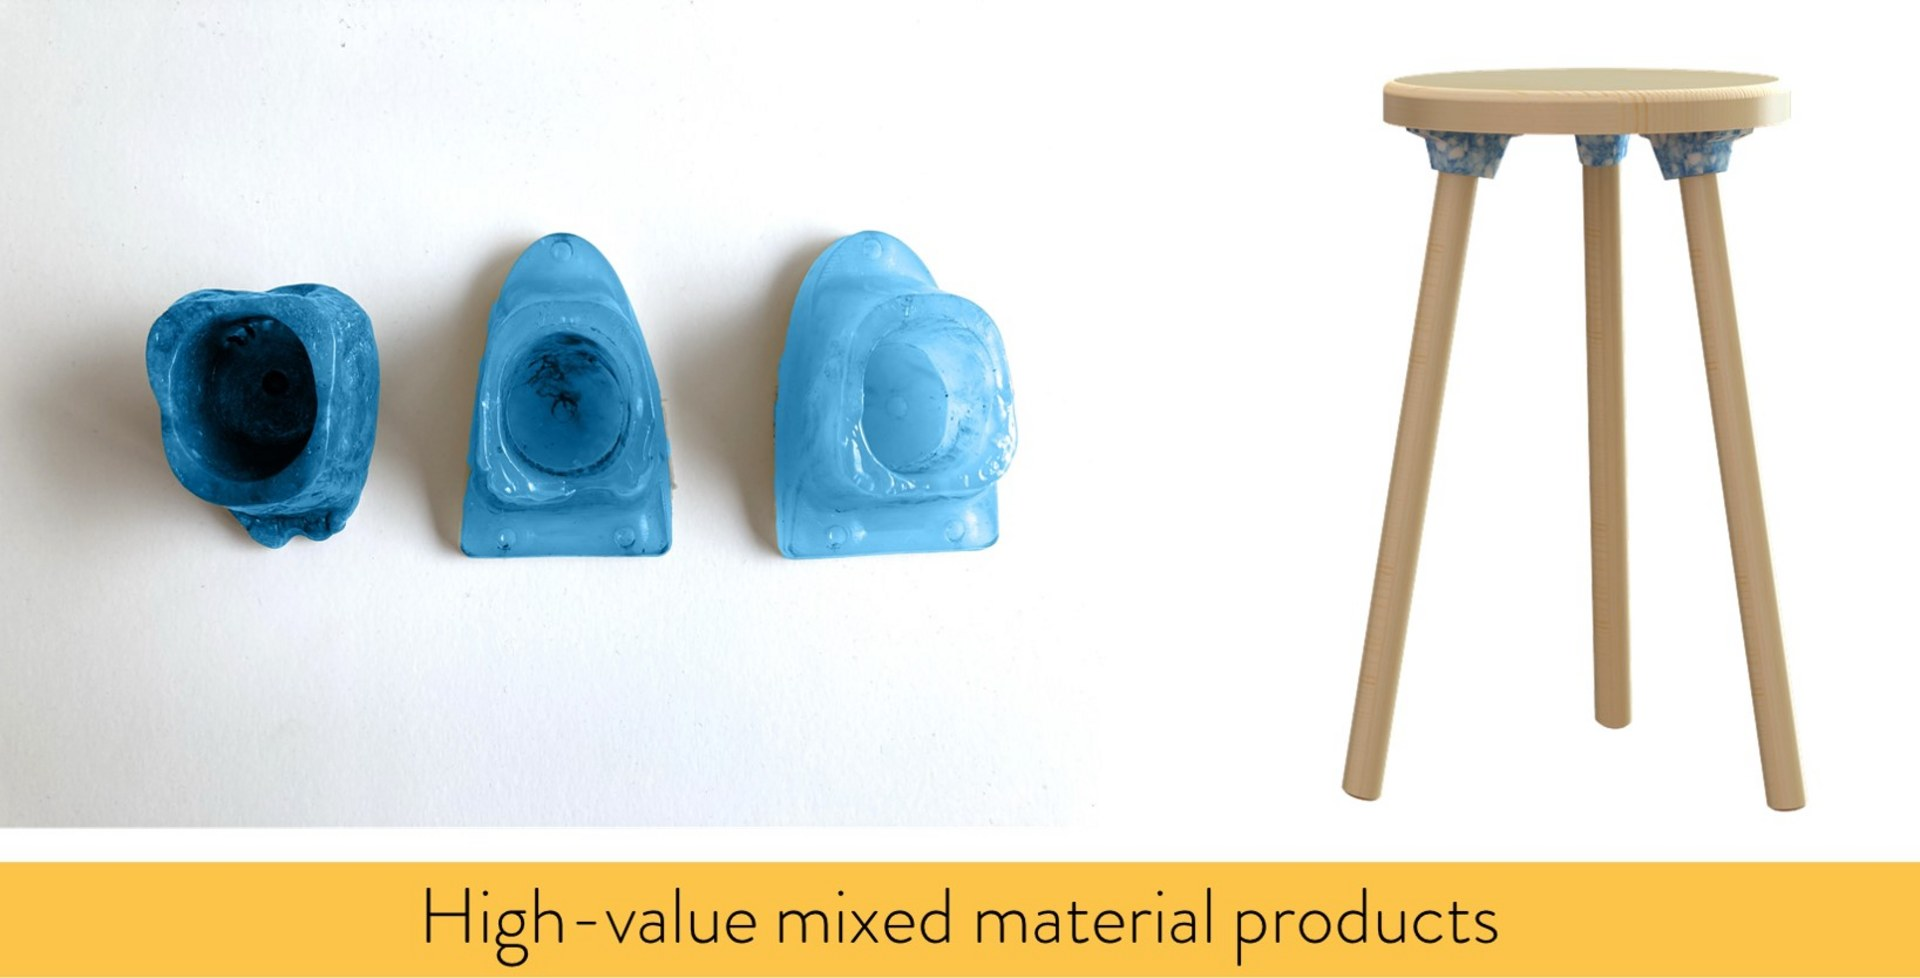 Producing high-end products